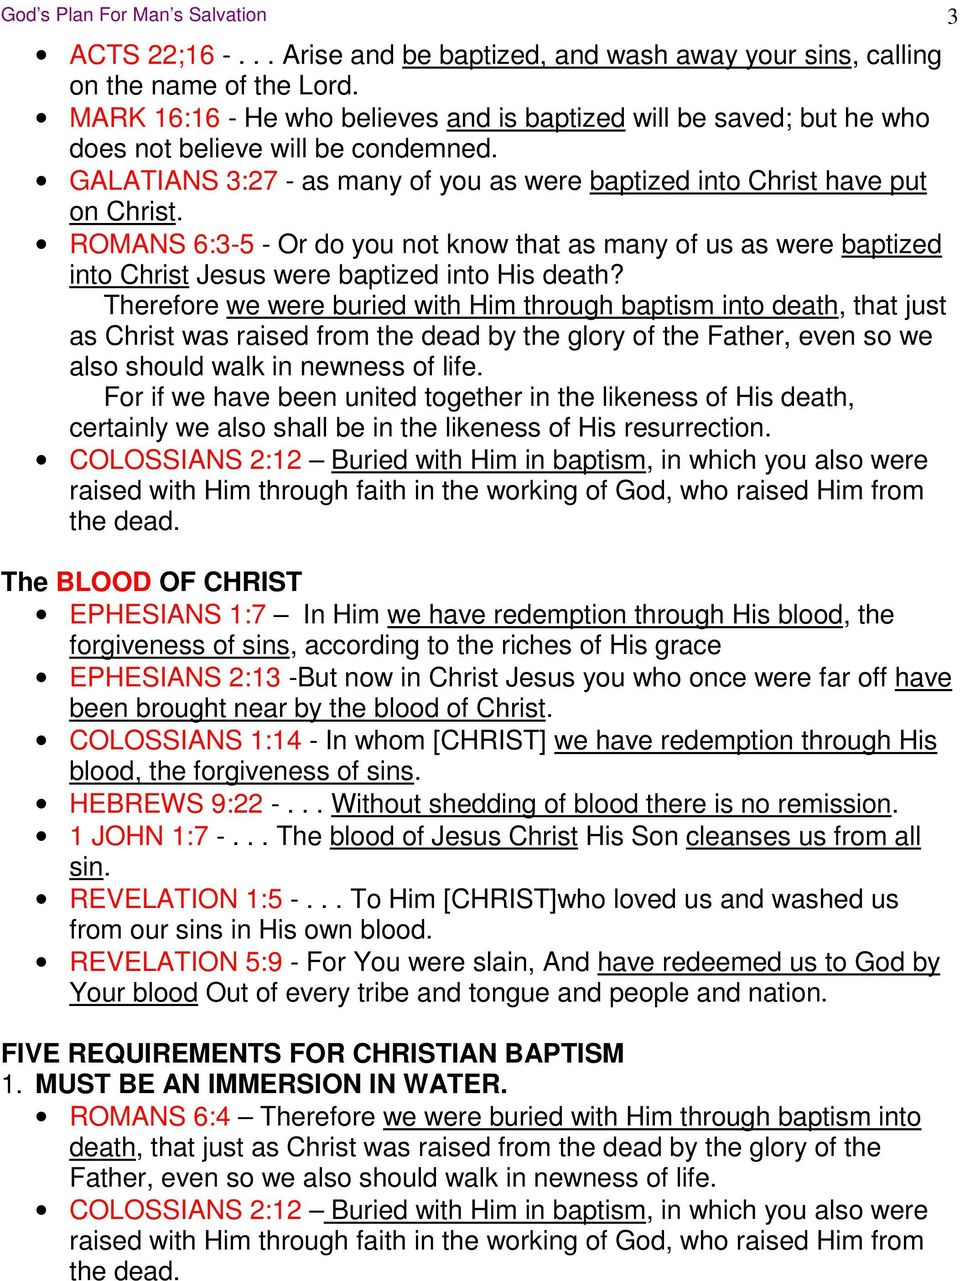 ROMANS 6:3-5 - Or do you not know that as many of us as were baptized into Christ Jesus were baptized into His death?